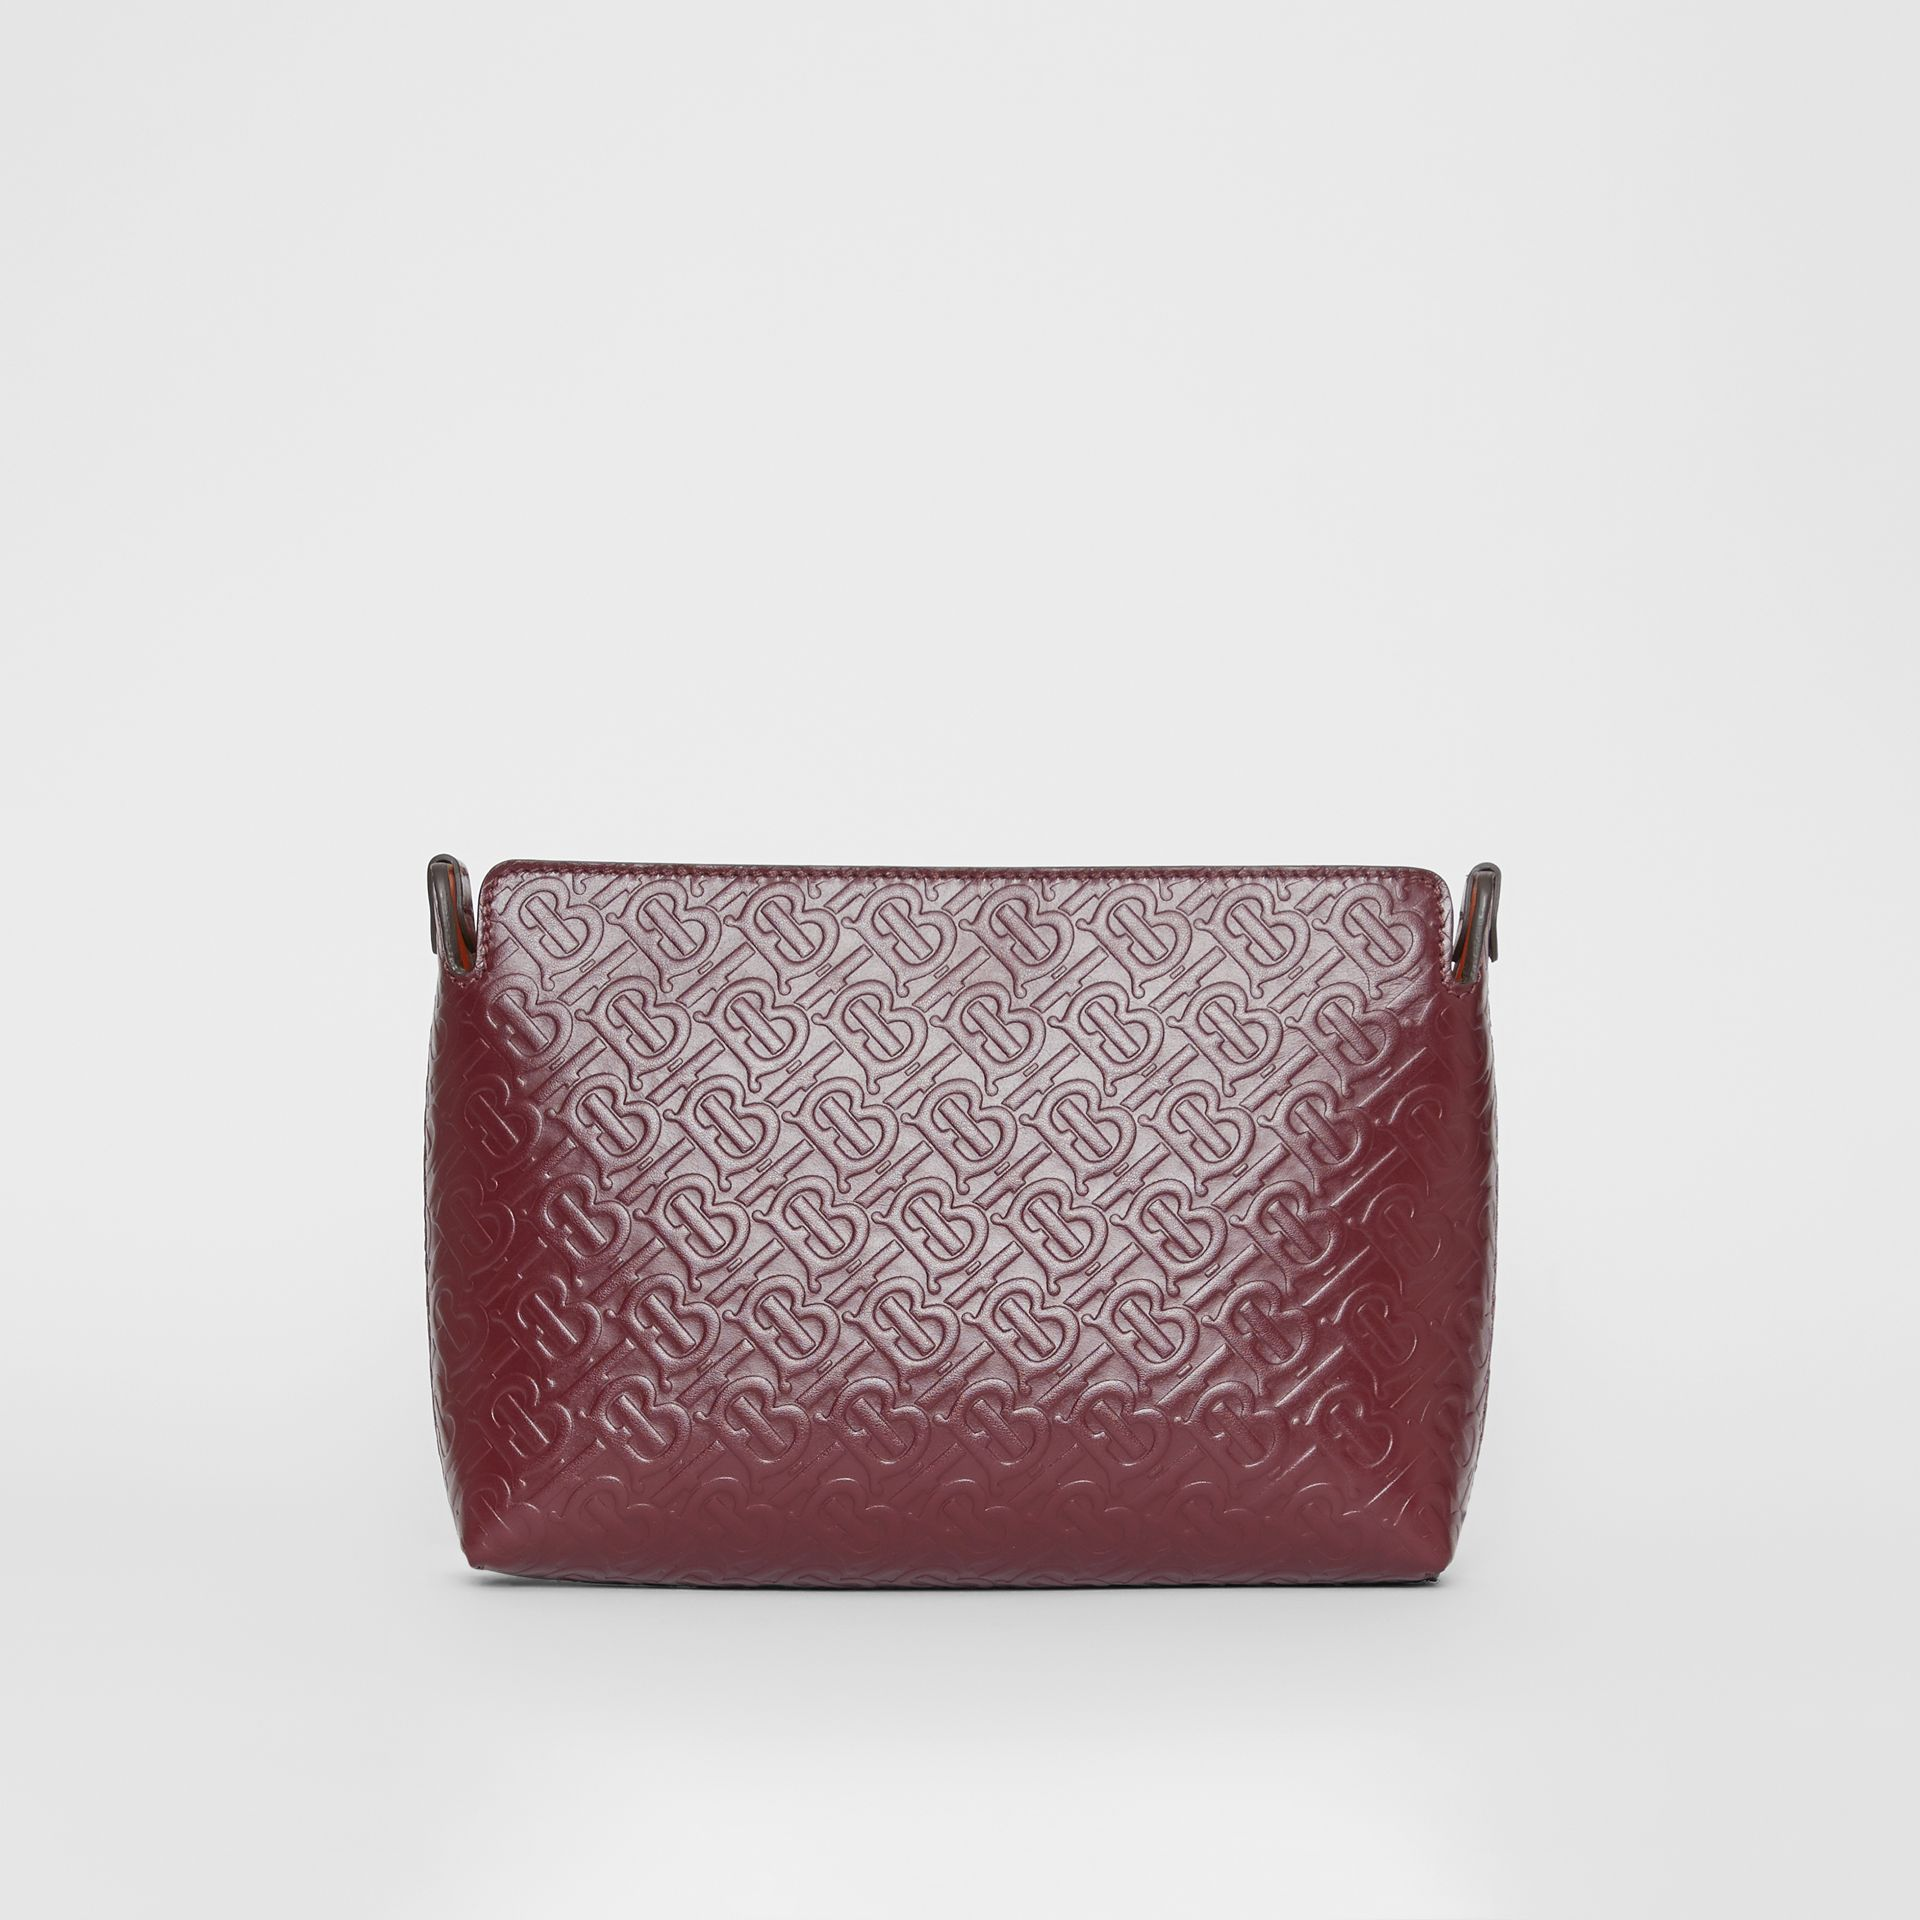 Medium Monogram Leather Clutch in Oxblood - Women | Burberry - gallery image 6